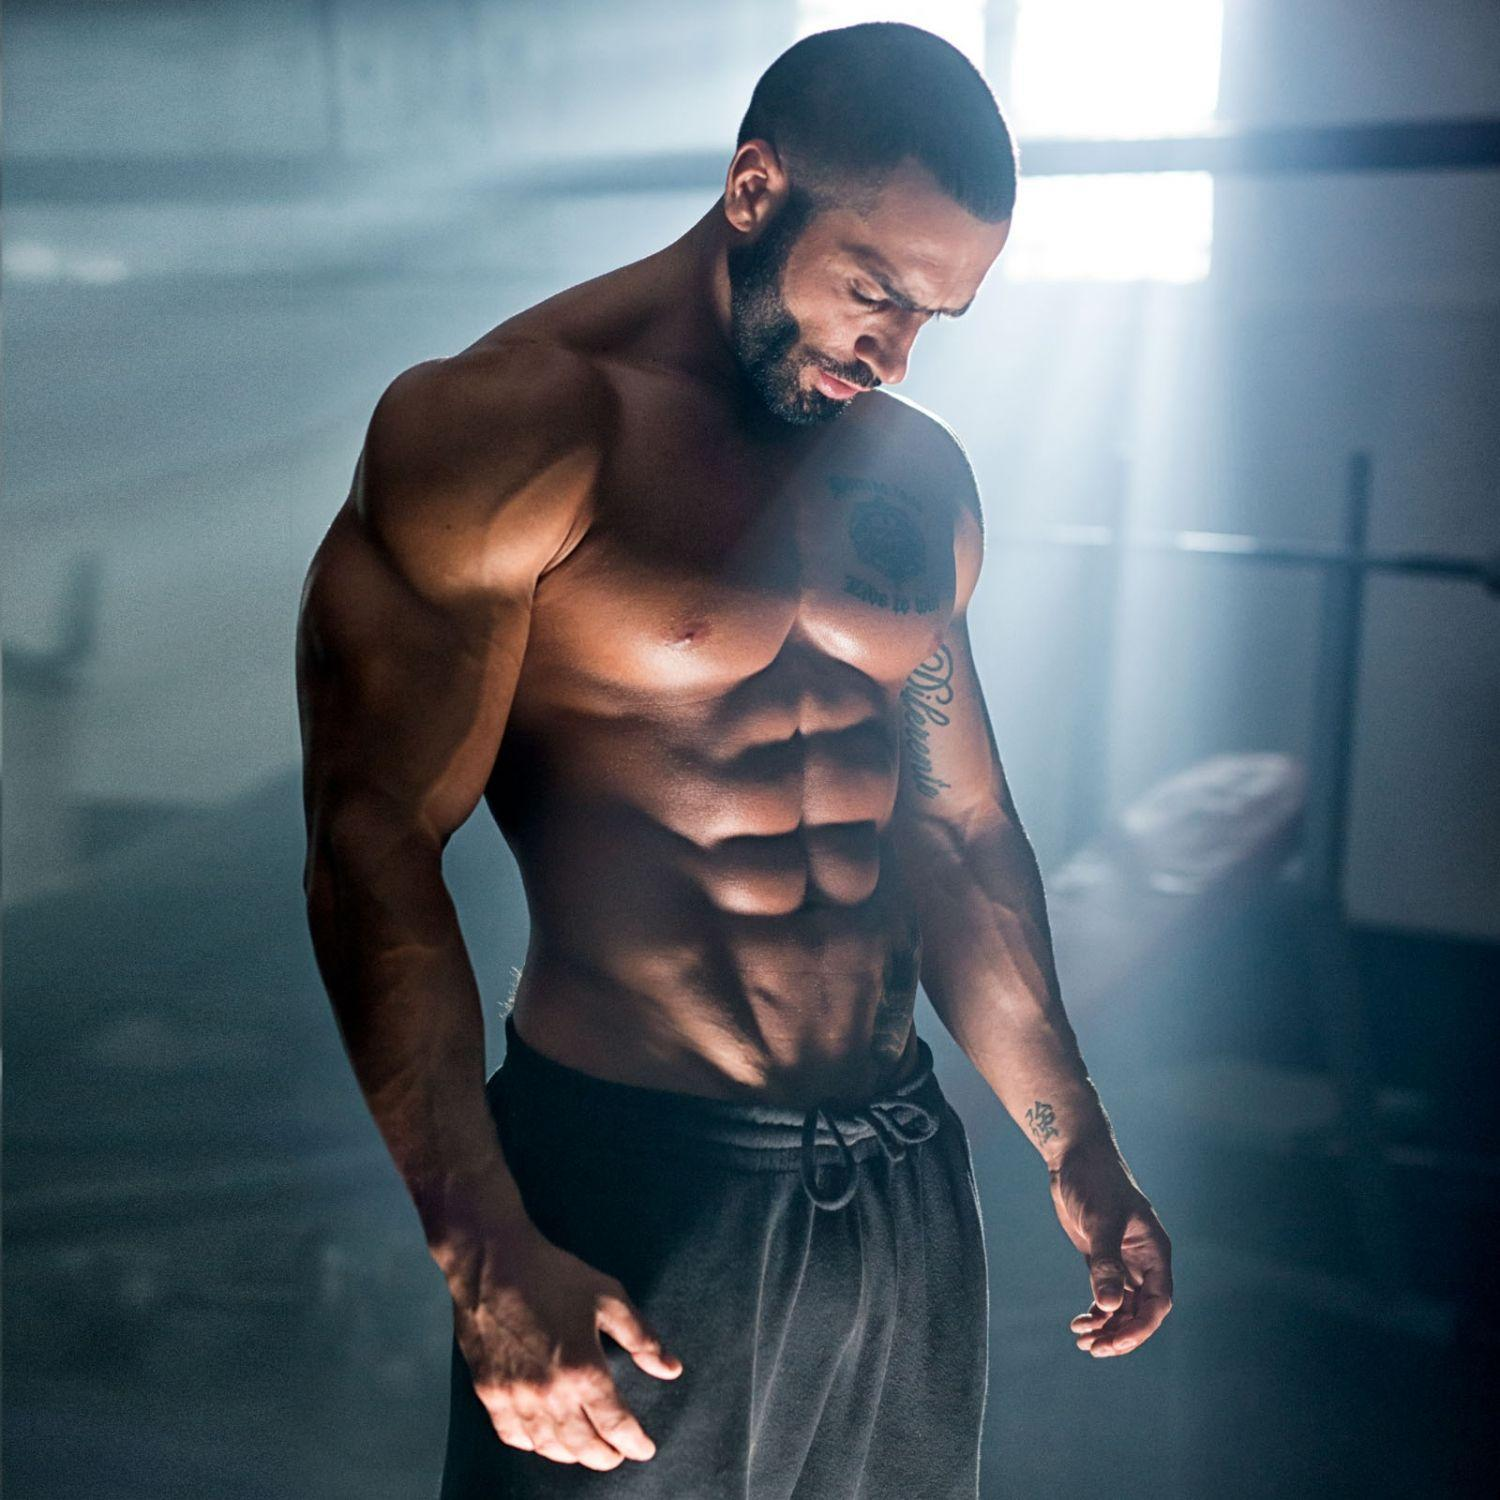 Workout Motivation Quotes Iphone Wallpaper Lazar Angelov Wallpapers Wallpaper Cave